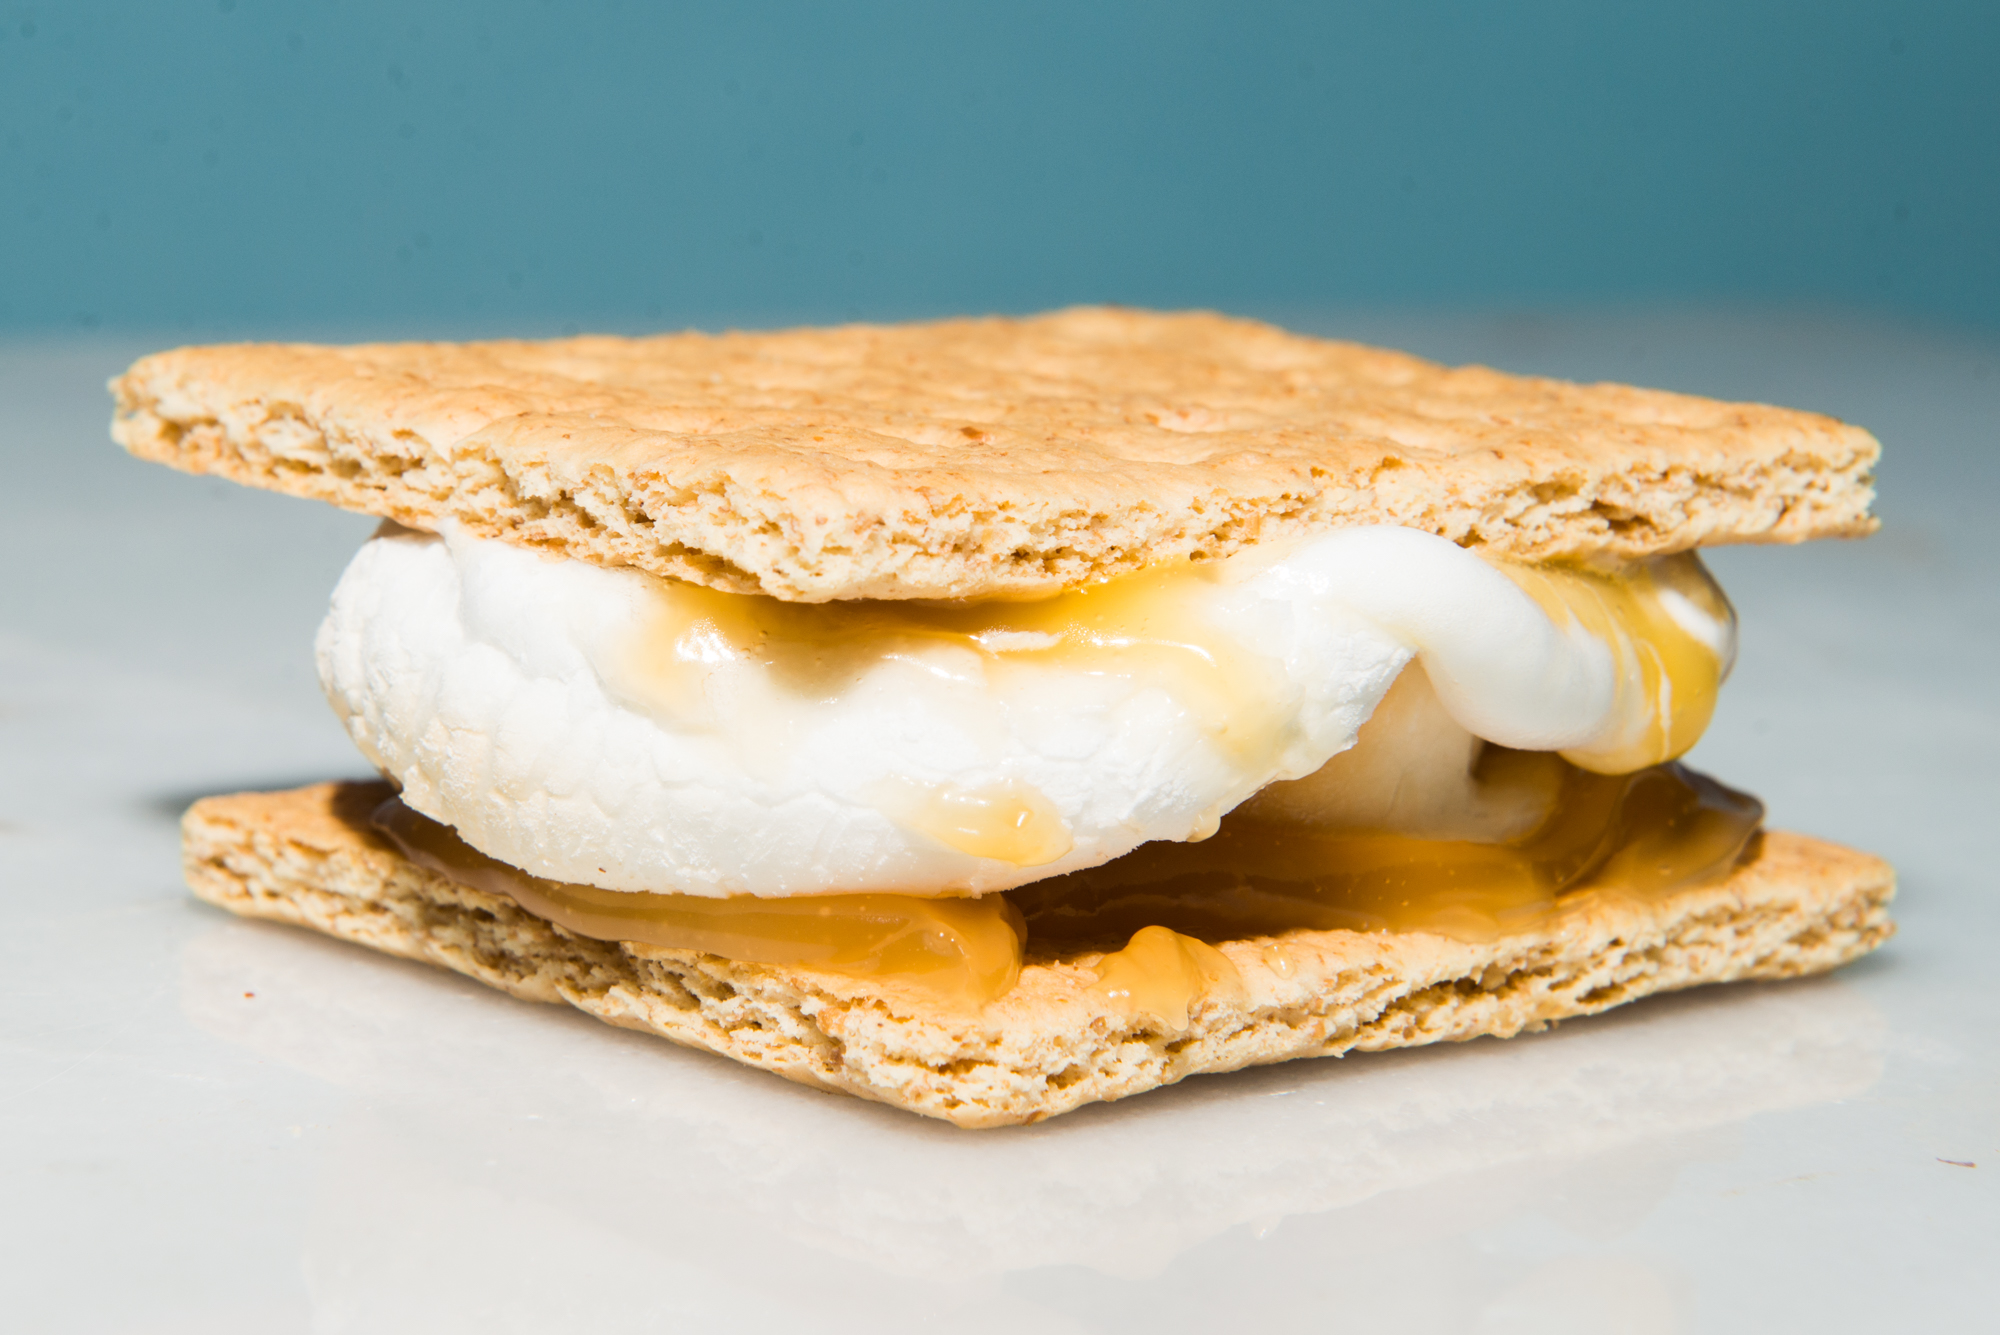 For a tasty take on lemon meringue, you have to try smearing some lemon curd on your crackers before plopping on that fluffy, pillowy marshmallow. Trader Joe's makes an excellent lemon curd that will set you back just $3. Sweet and just a teeny bit tart, you'll be hooked after one bite. (Photo: Chona Kasinger / Seattle Refined)